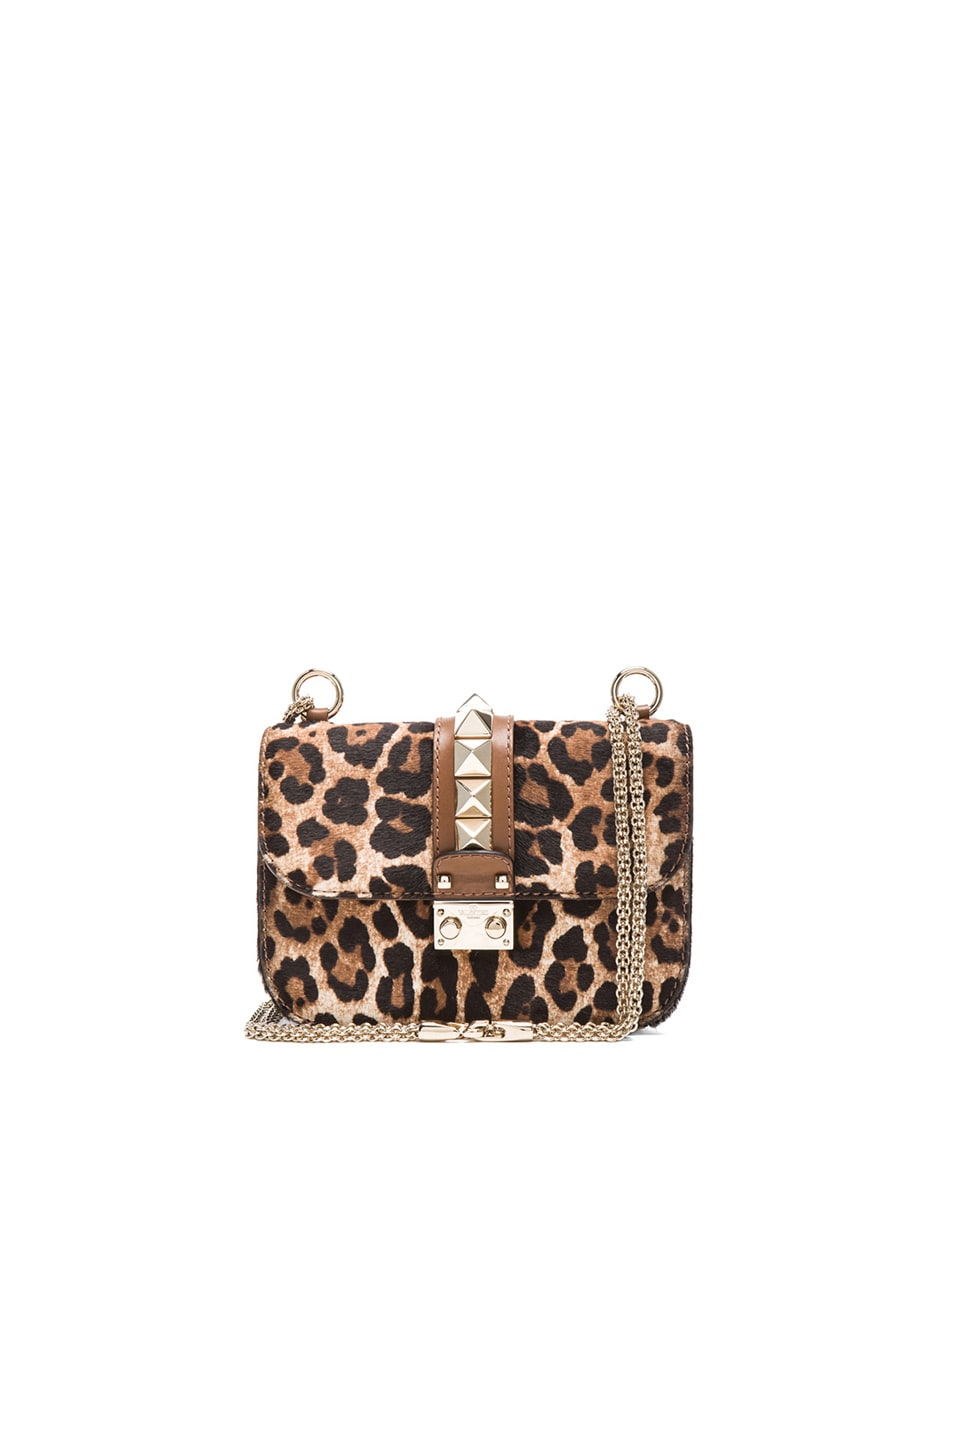 25e6c2ad6319 Image 1 of Valentino Cavallino Small Lock Flap Bag in Leopard